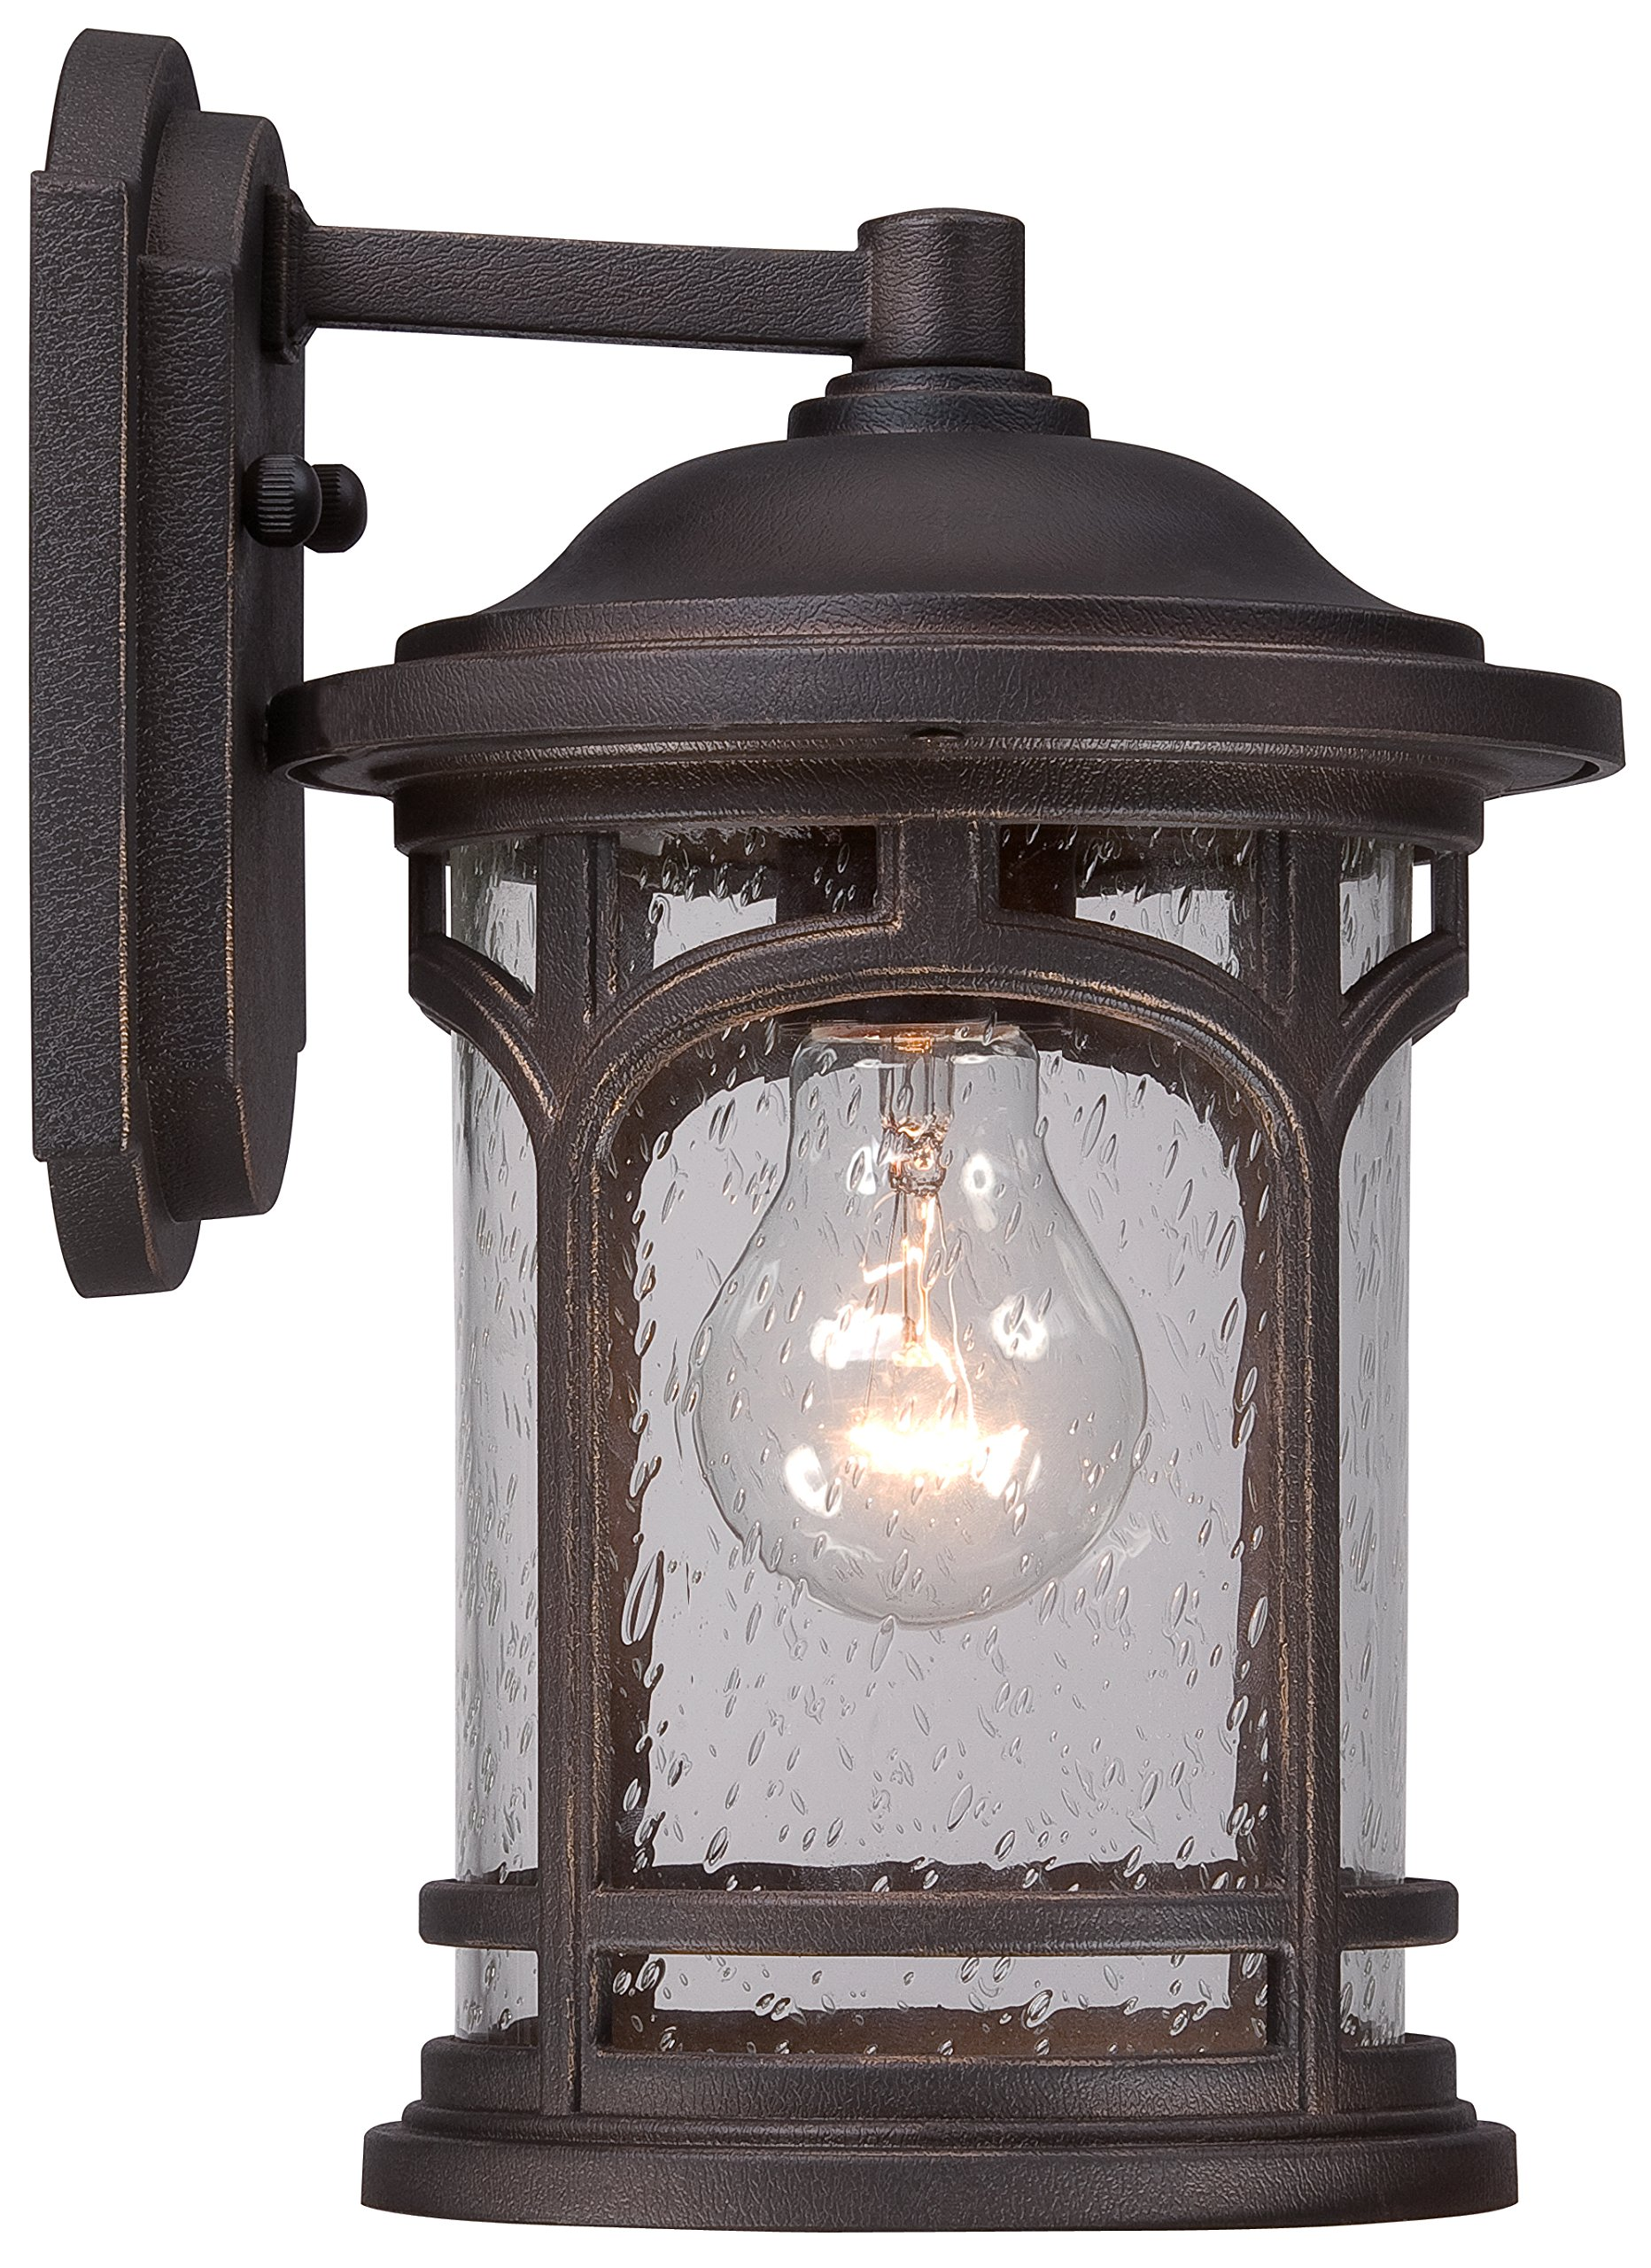 Luxury Rustic Outdoor Wall Light, Small Size: 11'' H x 7'' W, with Colonial Style Elements, Wrought Iron Design, Oil Rubbed Parisian Bronze Finish and Seeded Glass, UQL1101 by Urban Ambiance